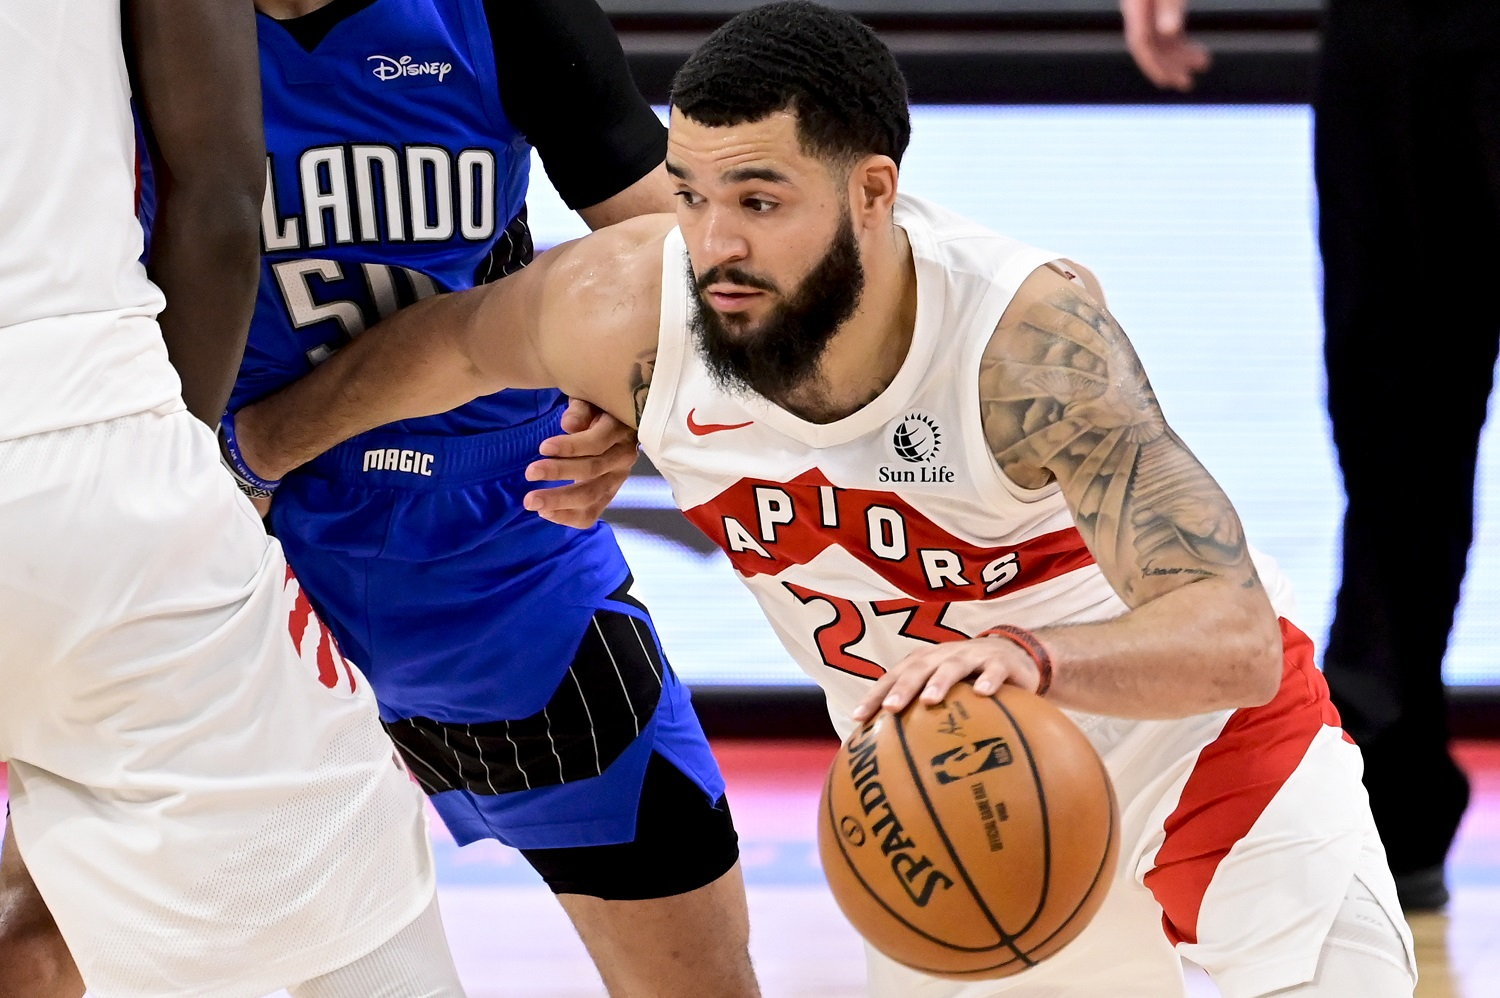 Fred VanVleet Outsmarted the NBA and Made $100 Million by Dodging the Draft